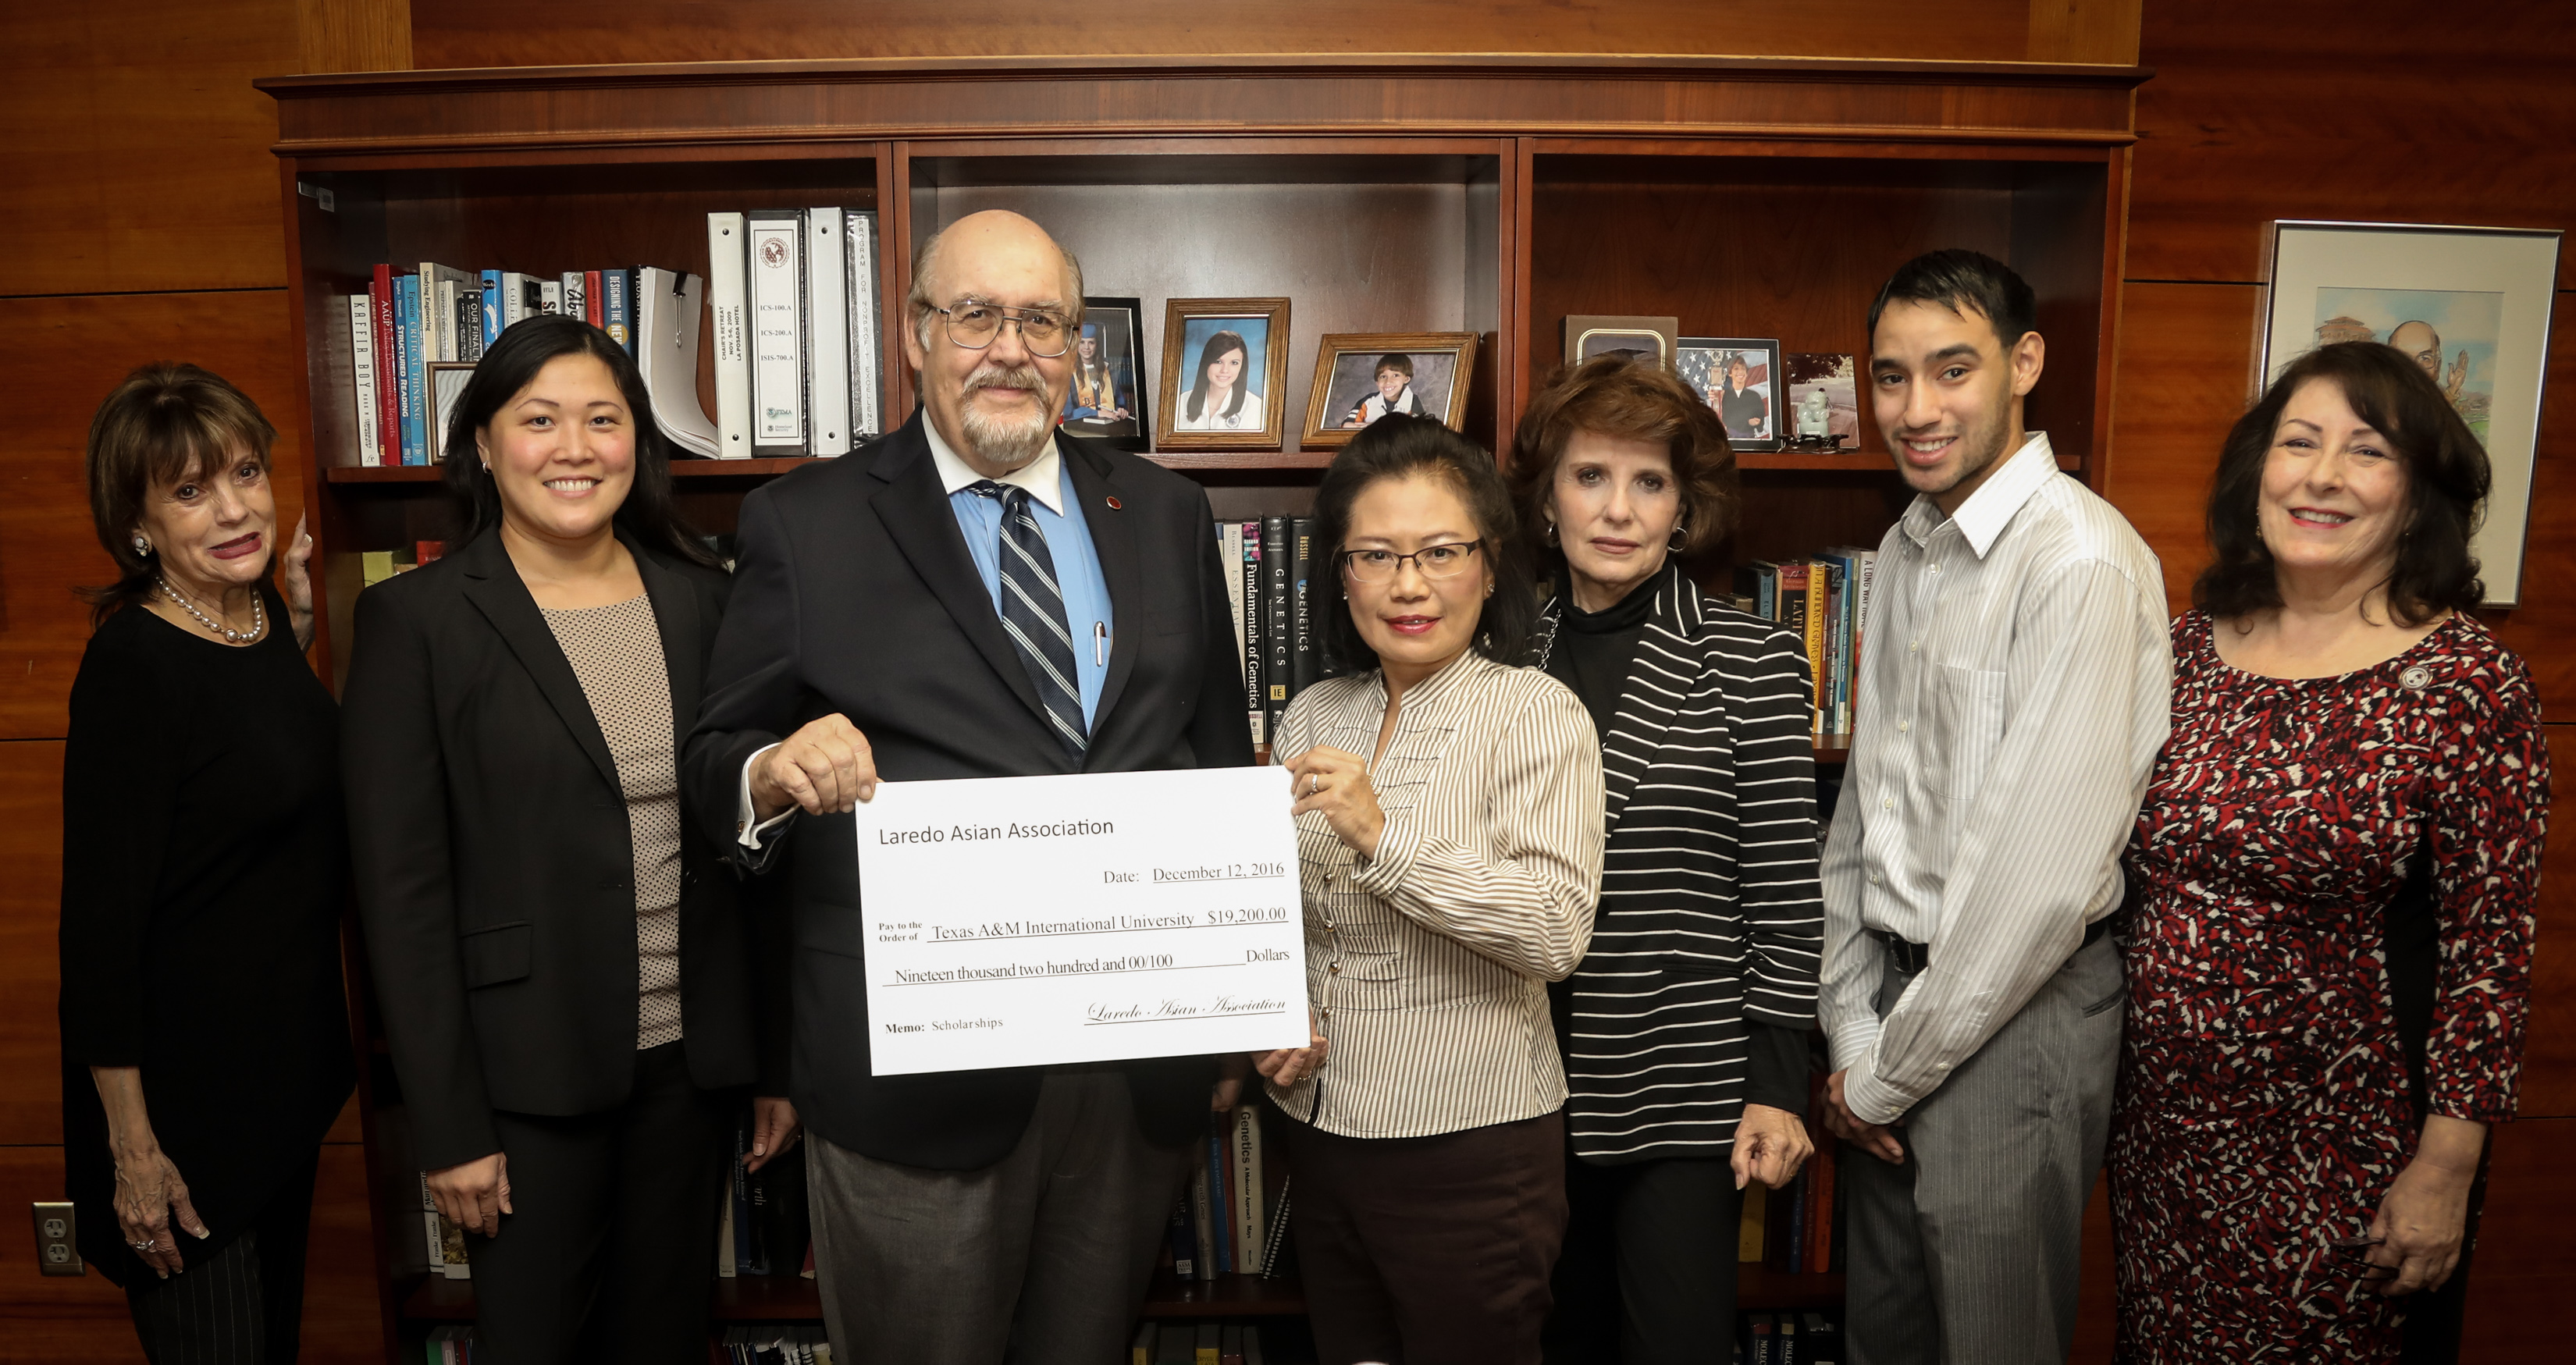 Laredo Asian Association Presents Gift to TAMIU Student Scholarships